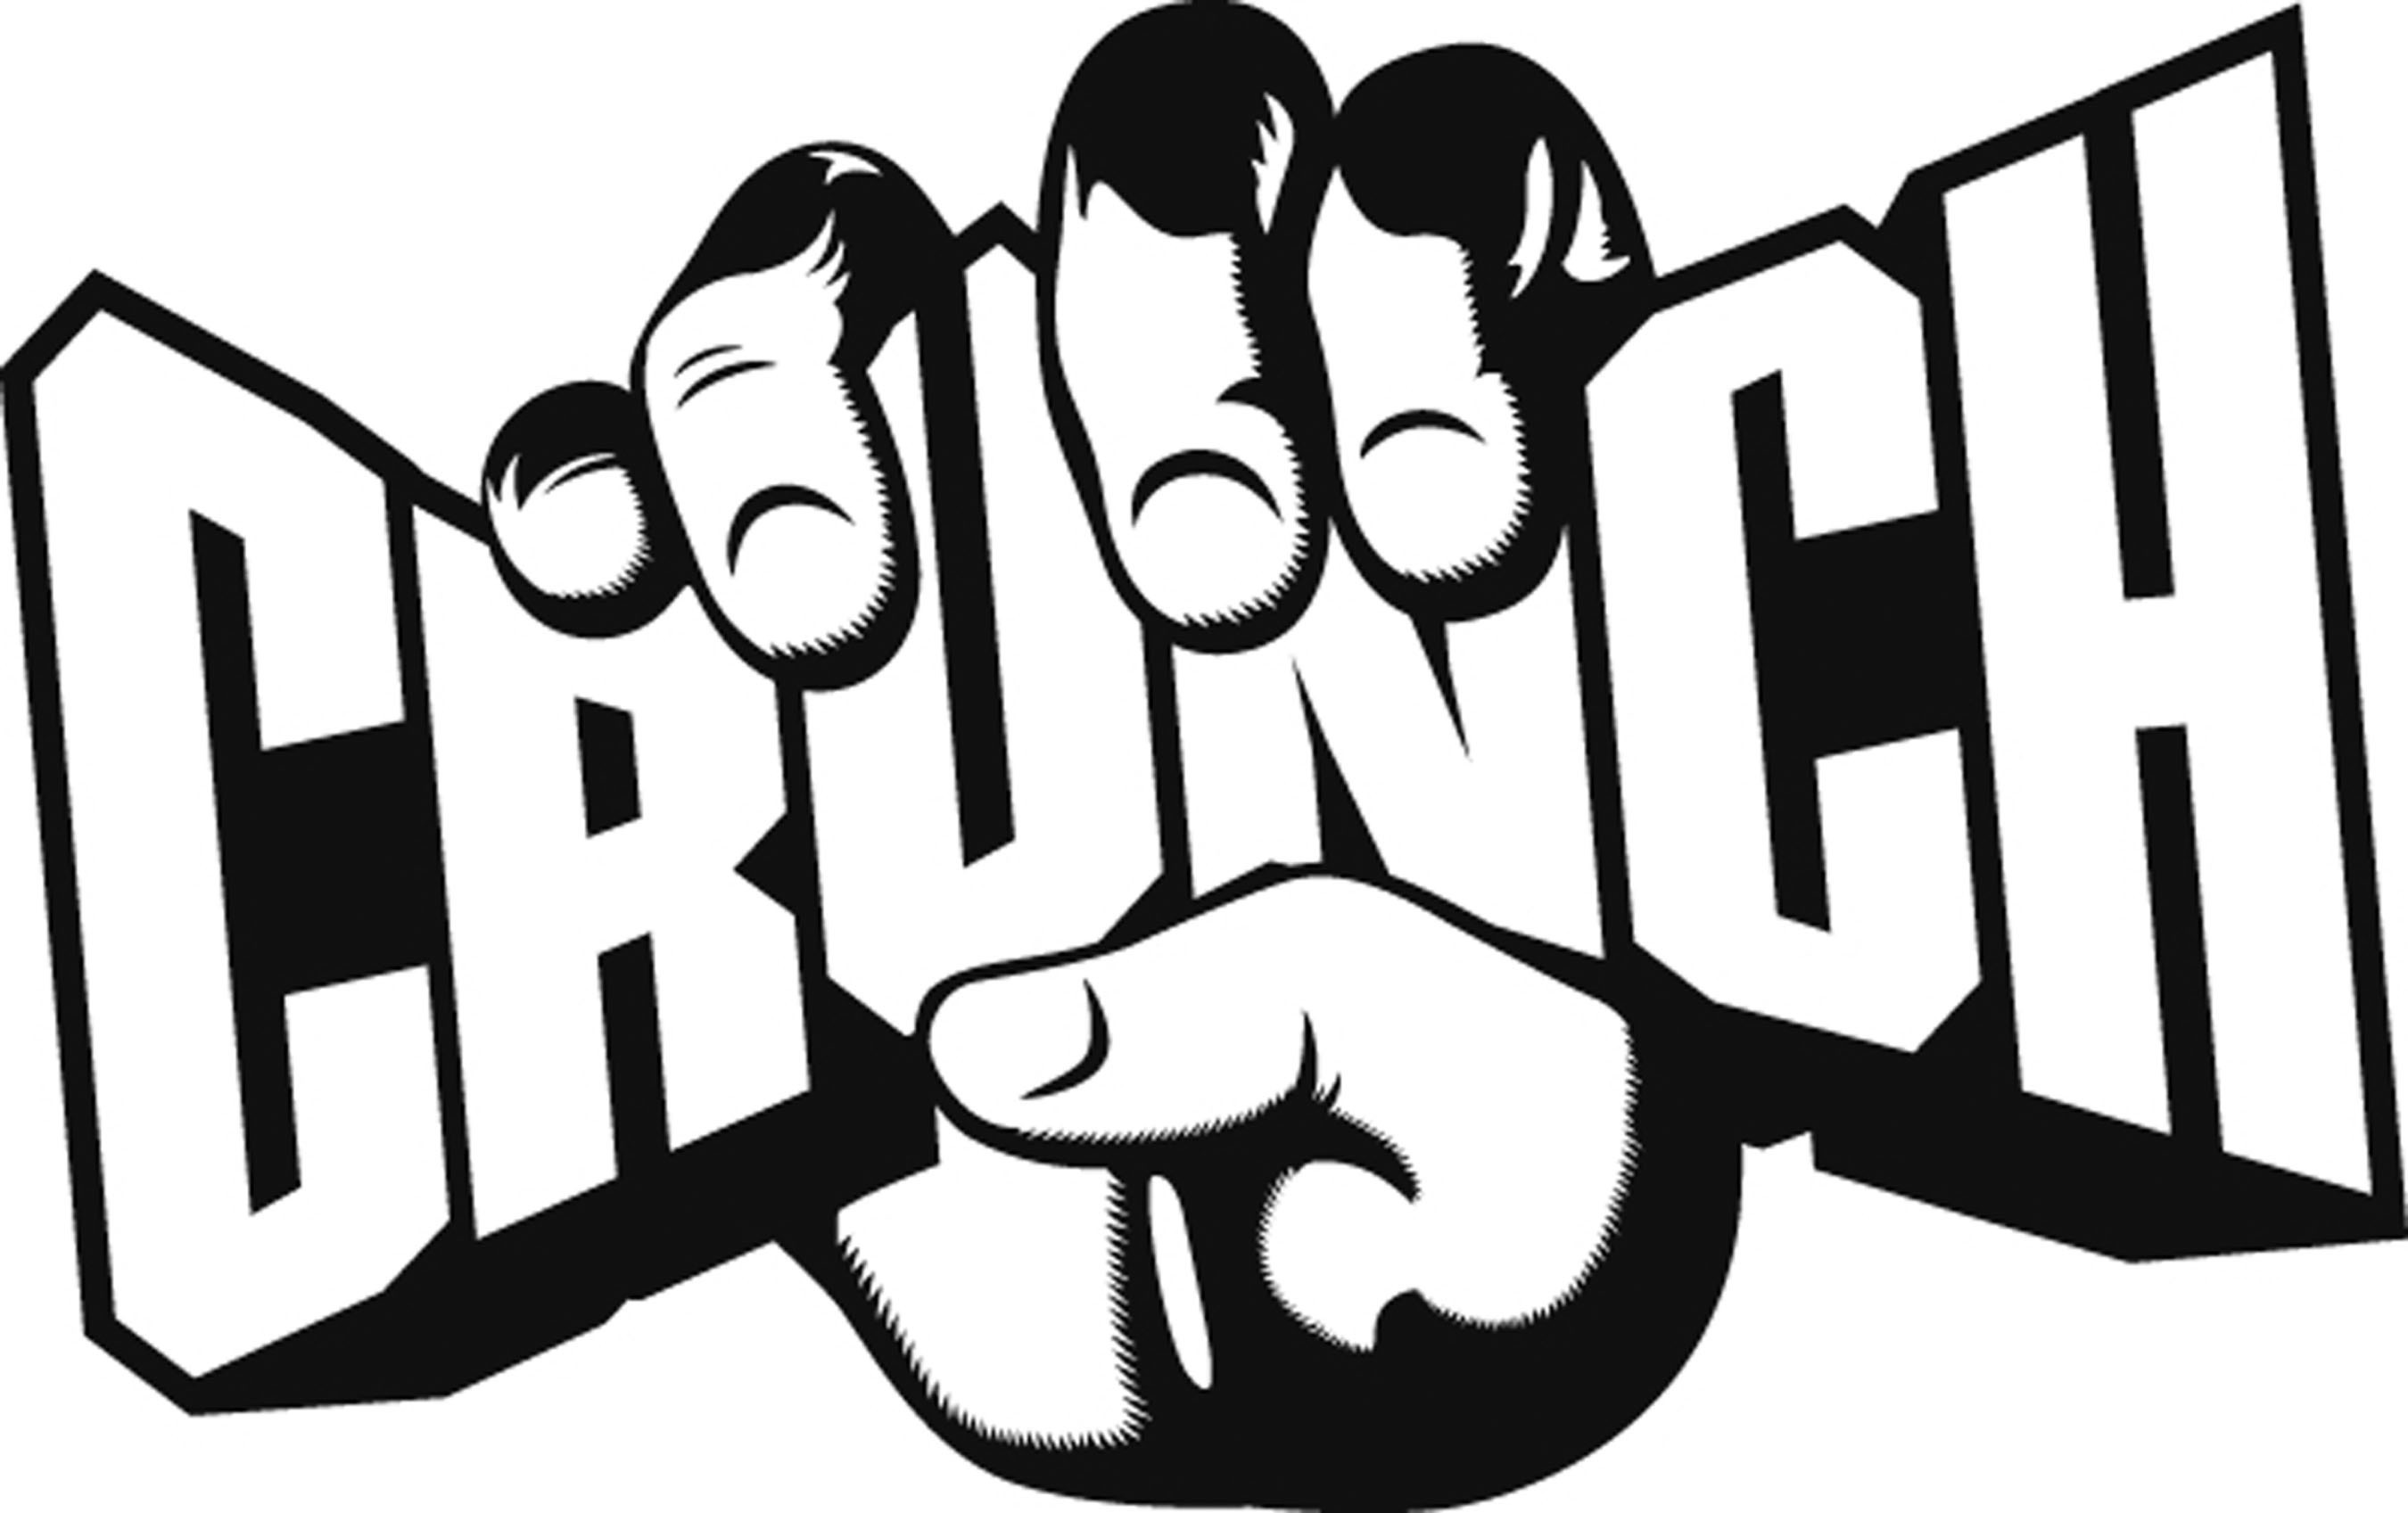 Crunch Franchise Announces Newest Location In Bradenton, FL